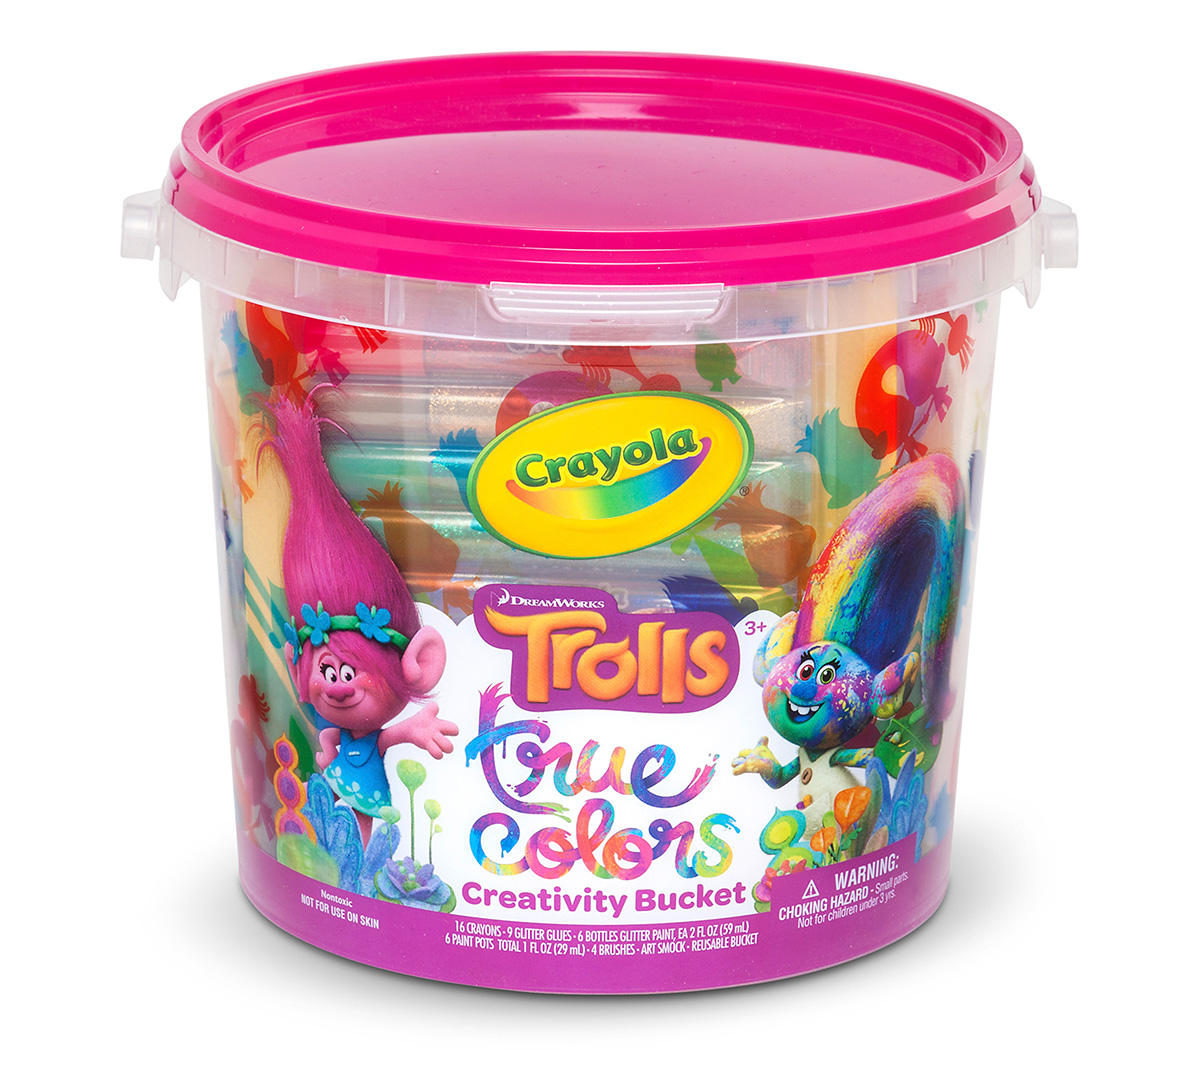 Trolls True Colors Creativity Bucket